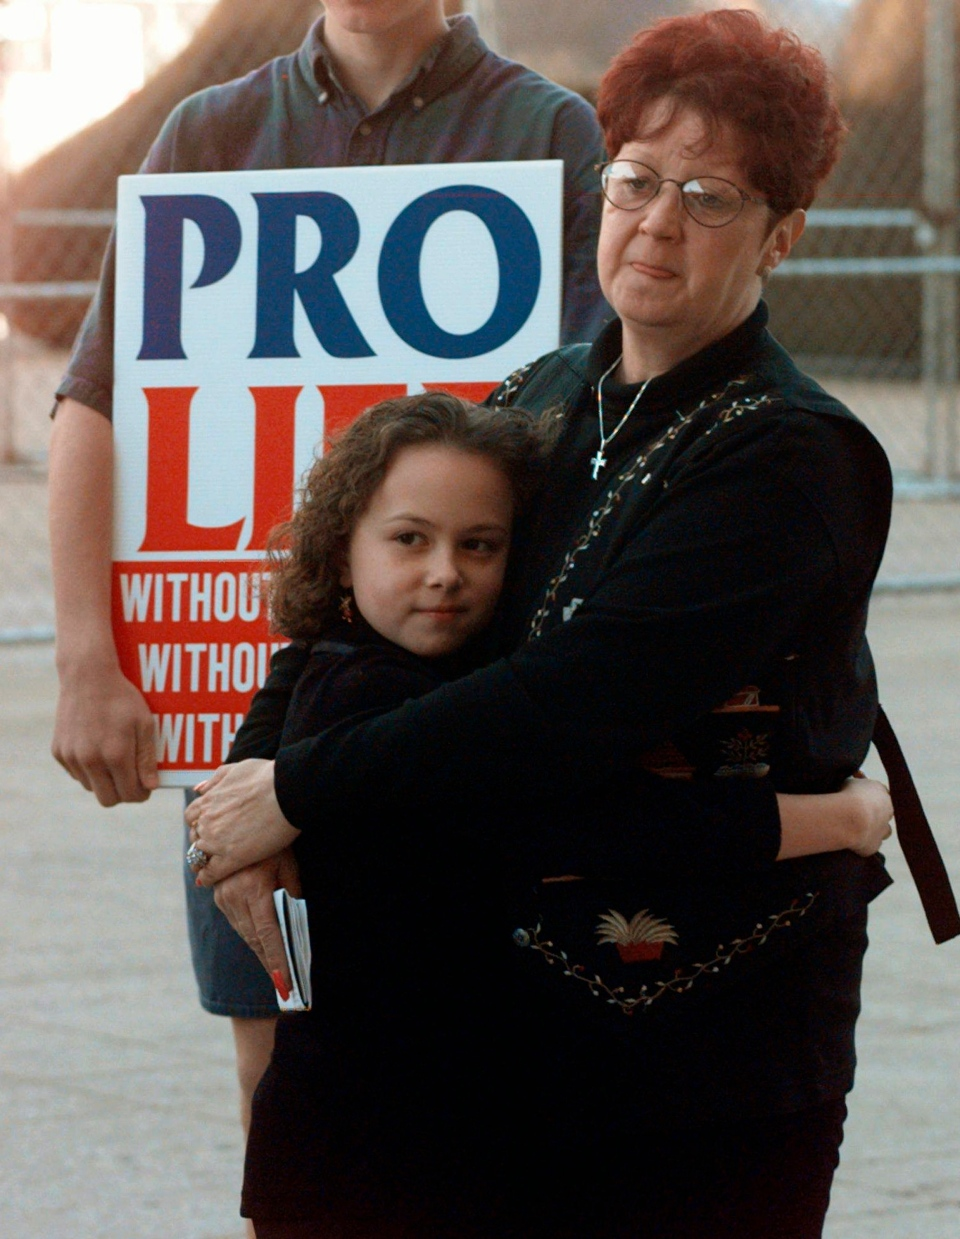 In this Jan. 22, 1997, file photo, Norma McCorvey, right, known as Jane Roe in the landmark U.S. Supreme Court ruling 24 years ago that legalized abortion nationwide, stands with her friend Meredith Champion, 9, at an Operation Rescue rally in downtown Dallas. (AP / Ron Heflin)